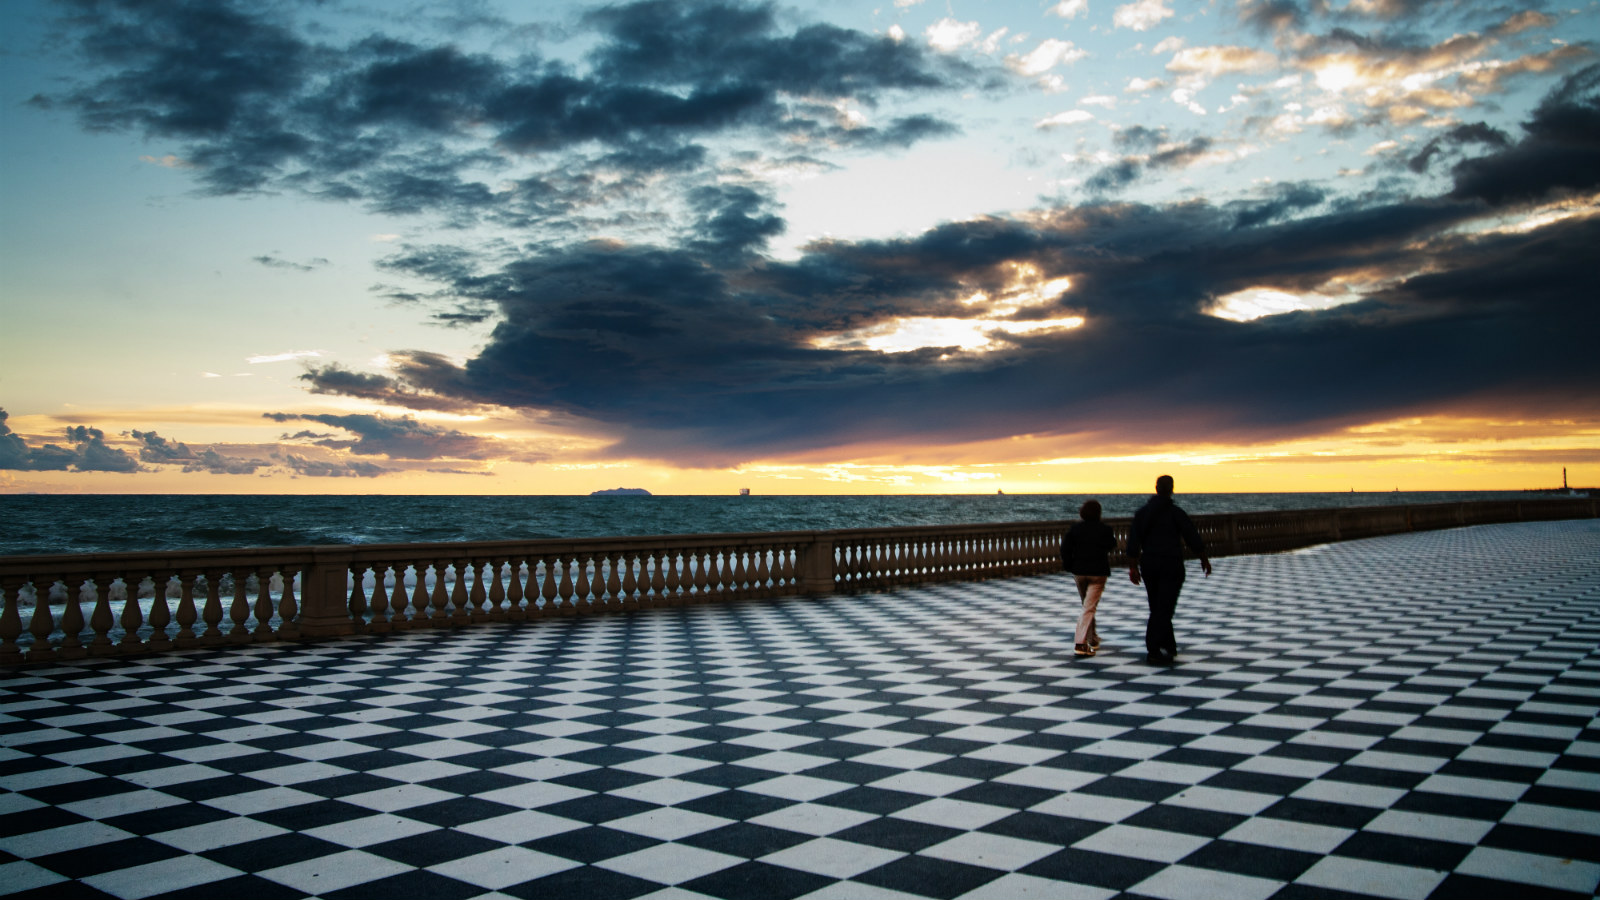 Terrazza Mascagni in Livorno - by Fabrizio Angius - The Grand Wine ...